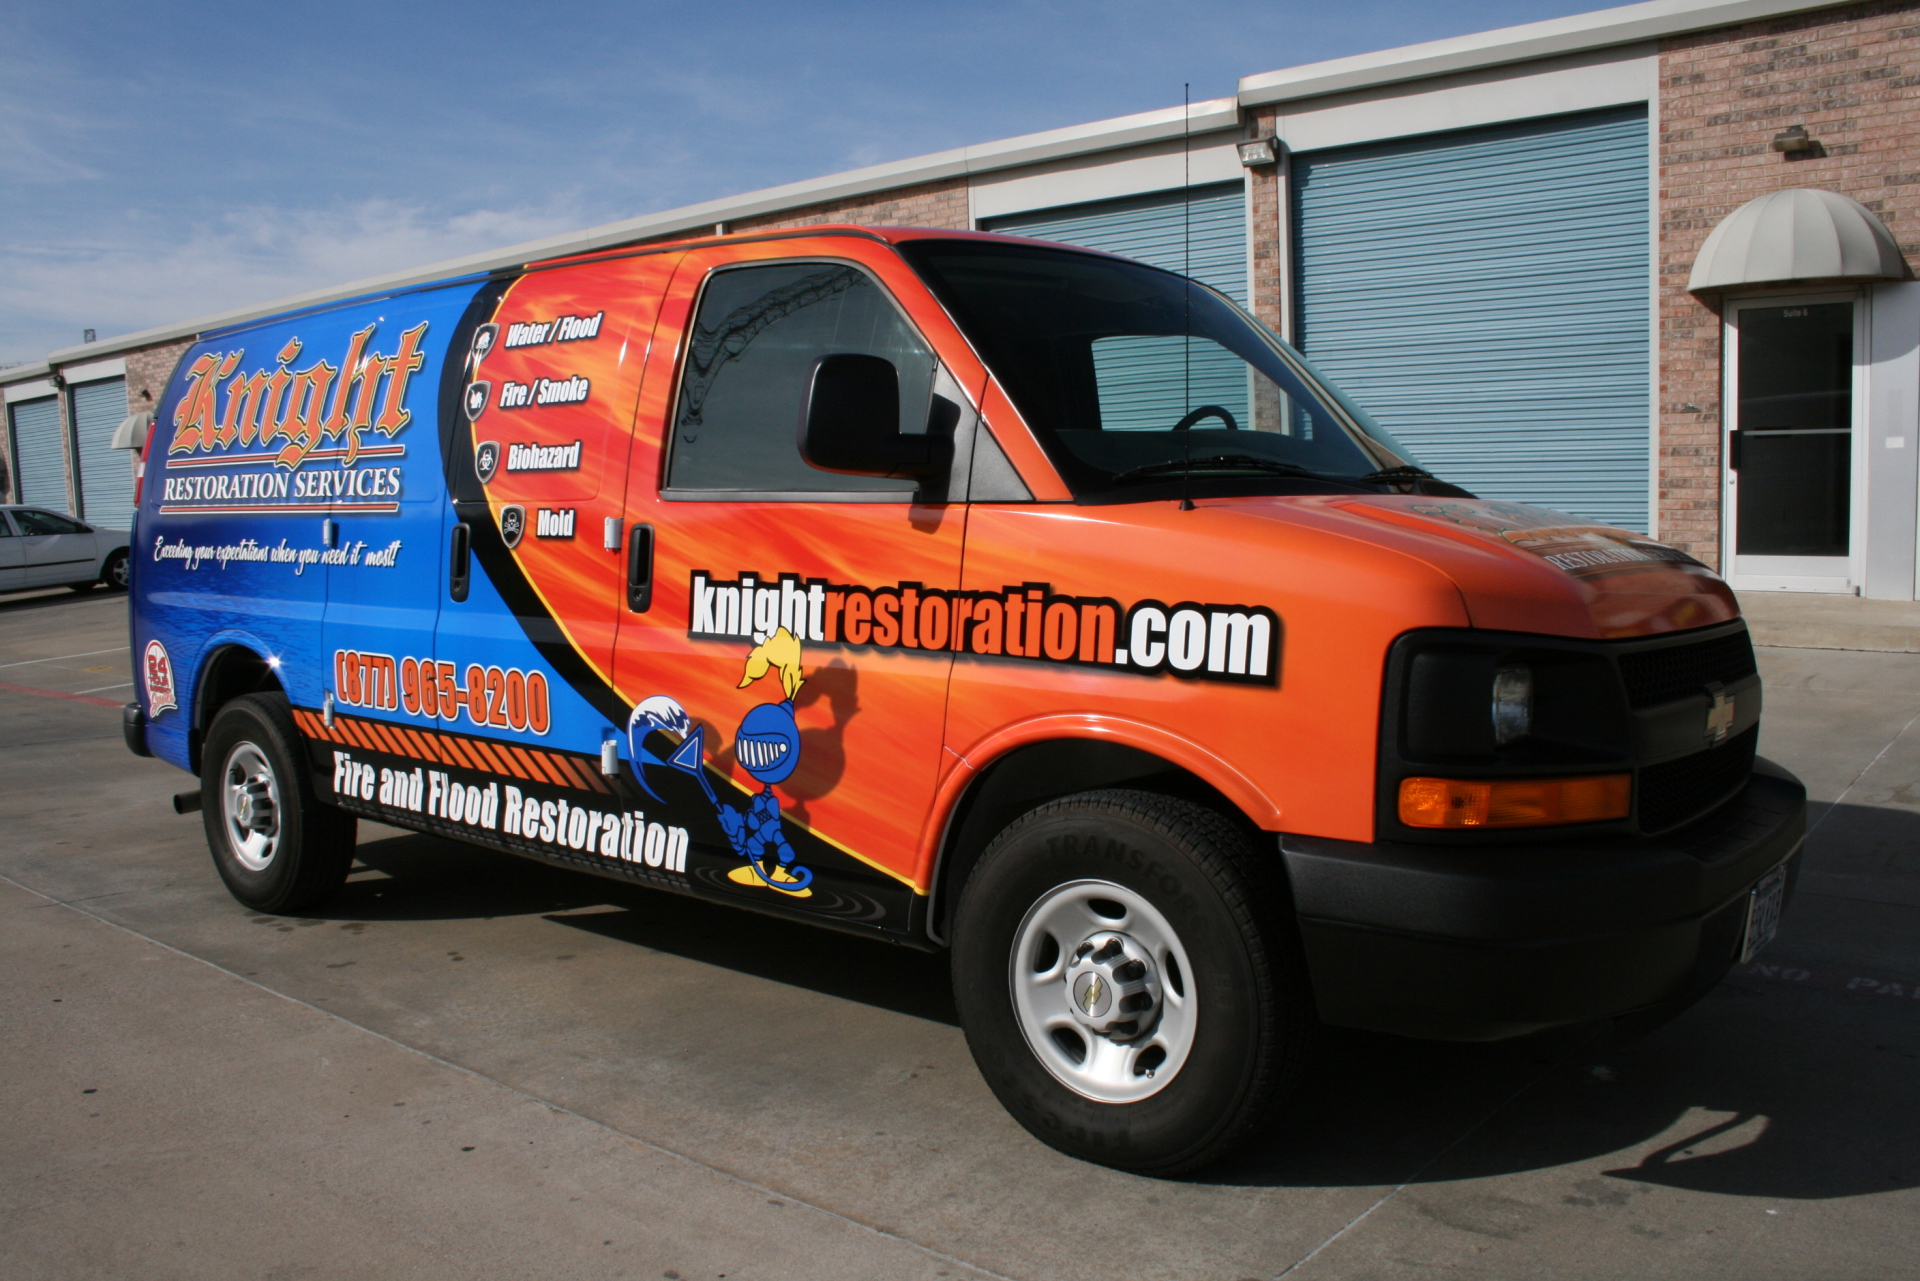 Cleaning and restoration services van wrap advertising